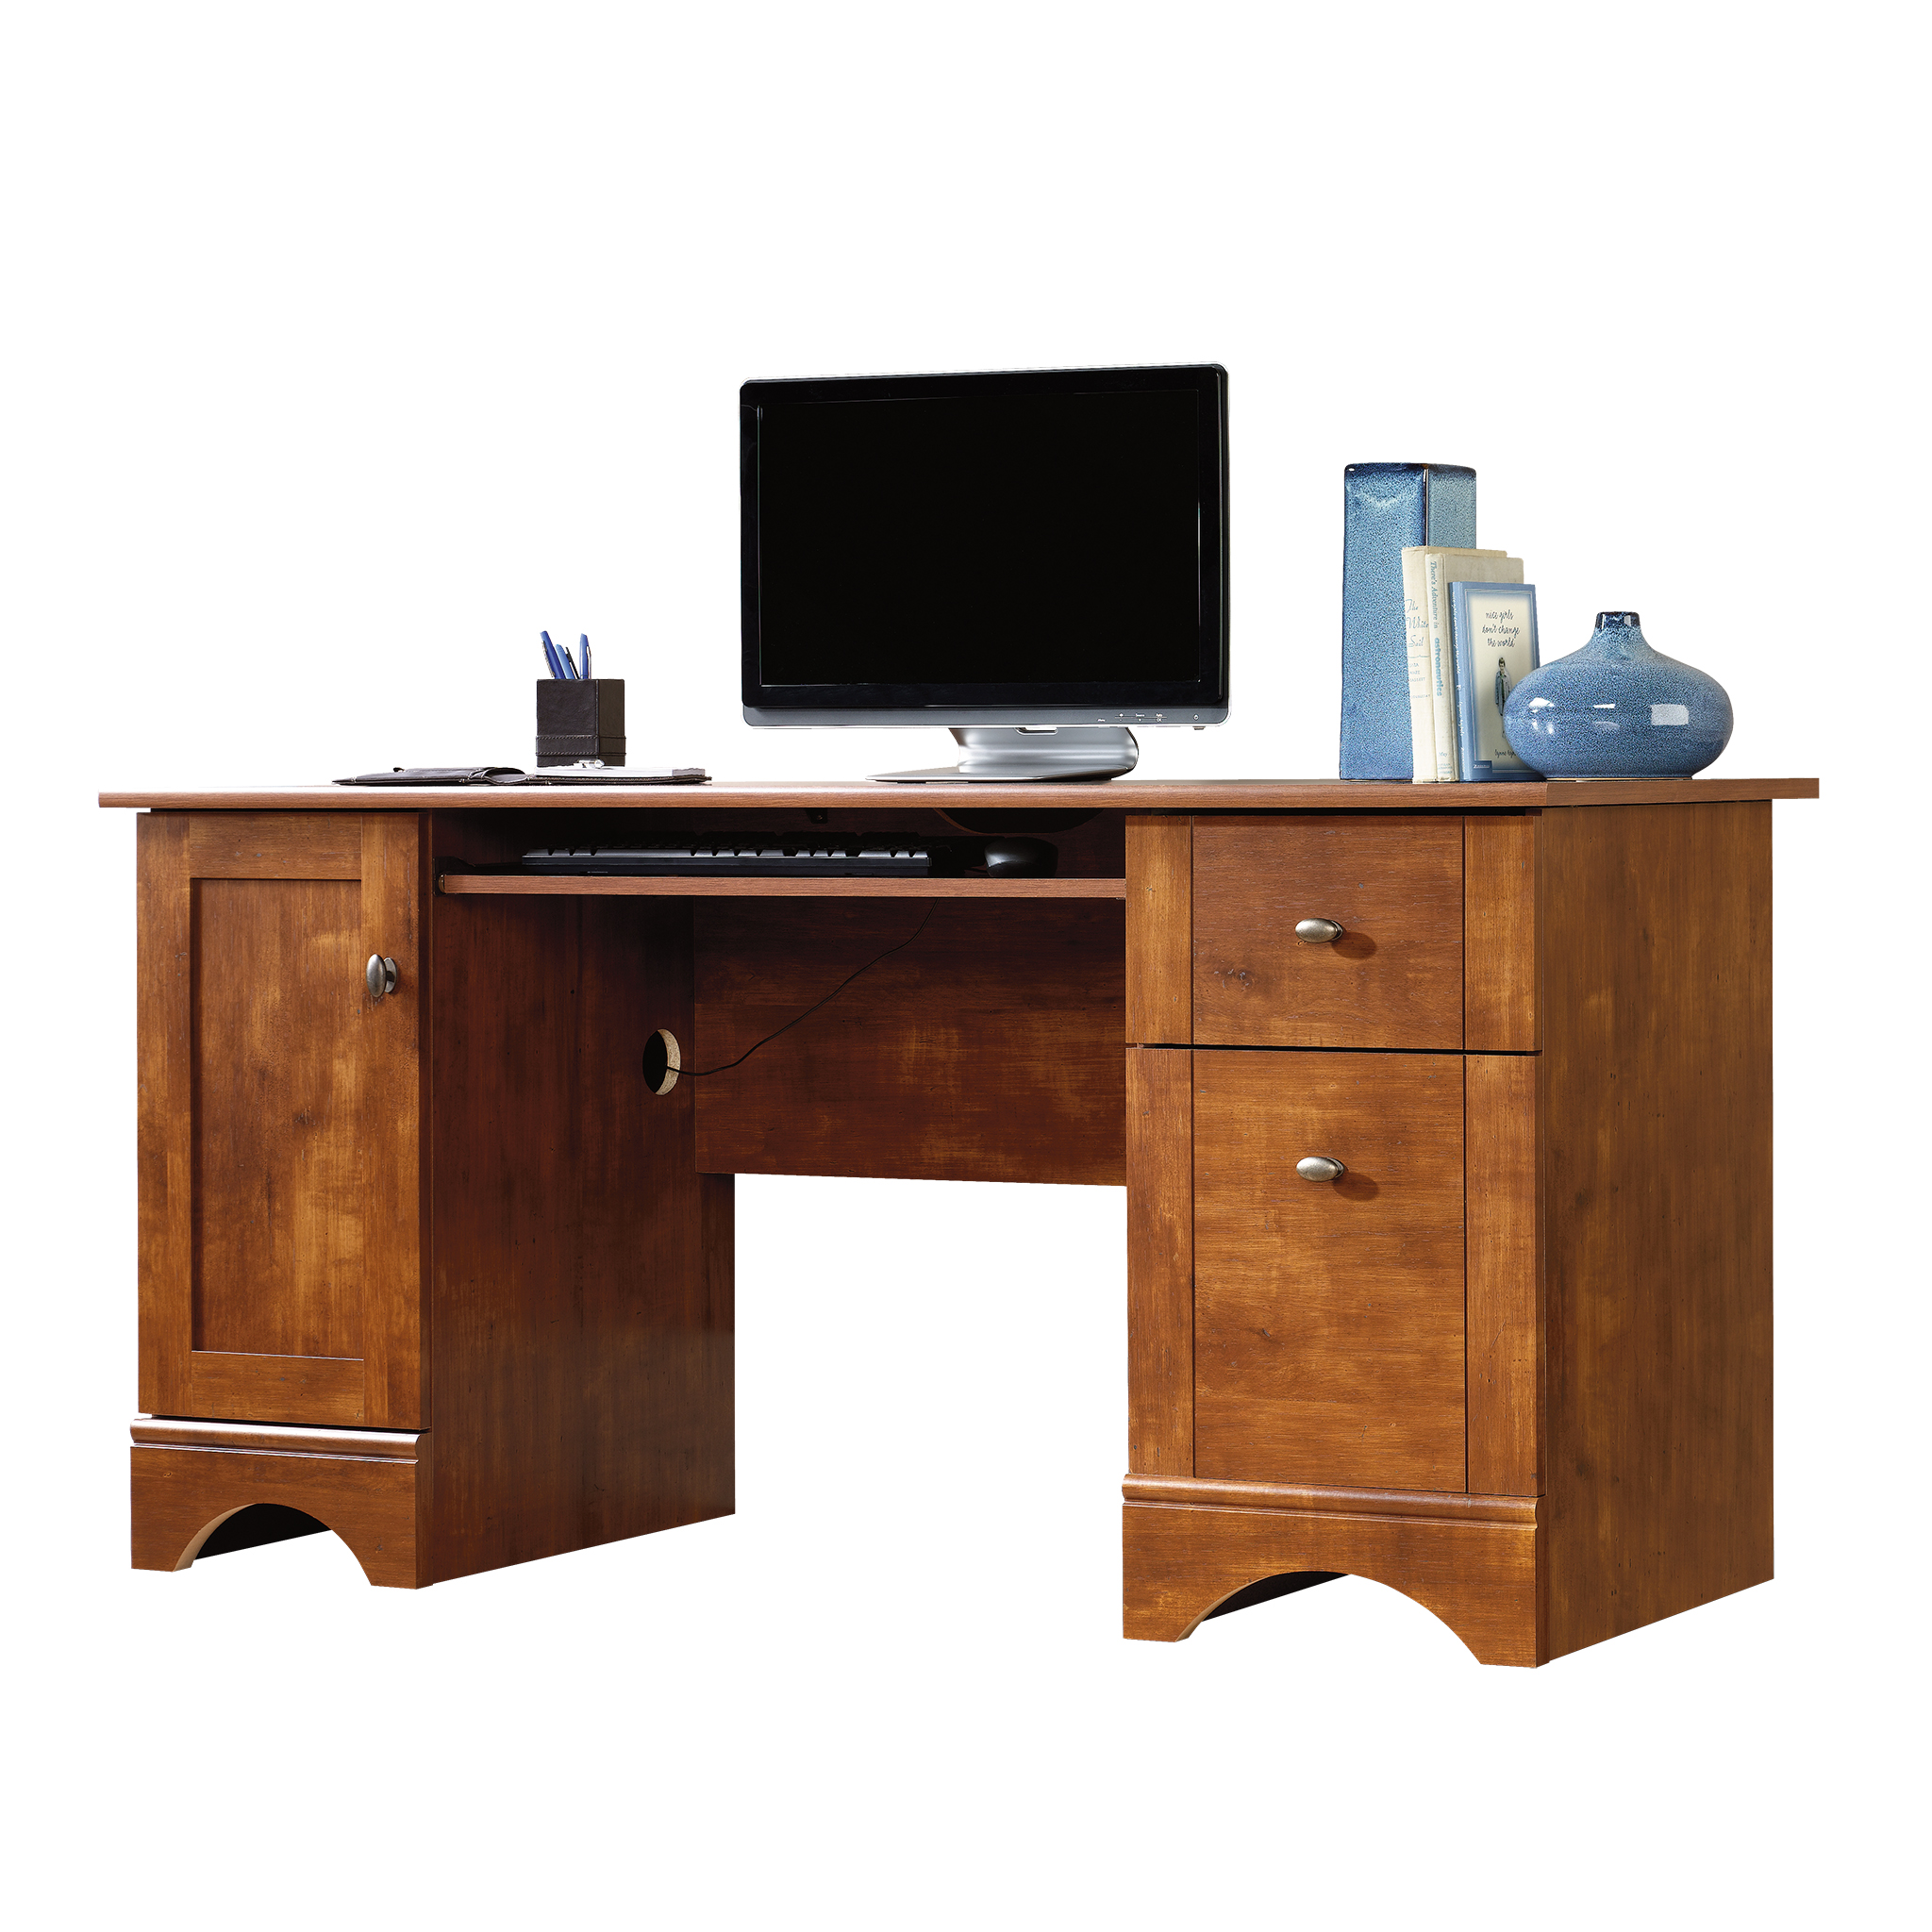 Sauder Select Computer Desk, Brushed Maple Finish